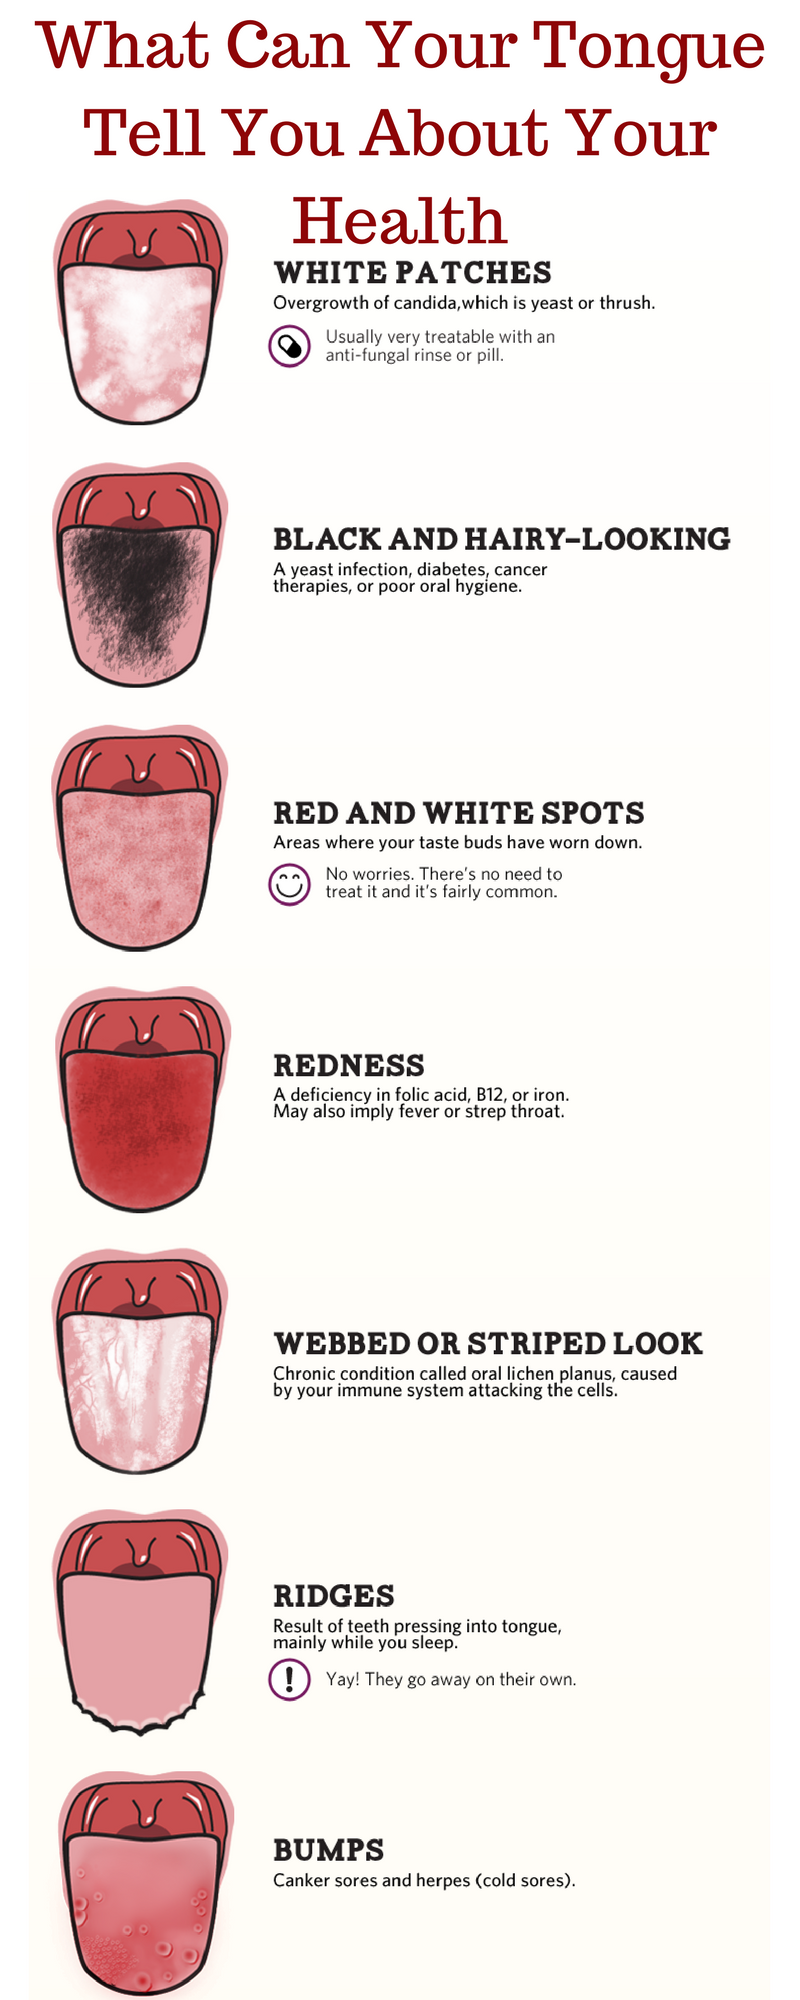 How to Have a Healthy Tongue